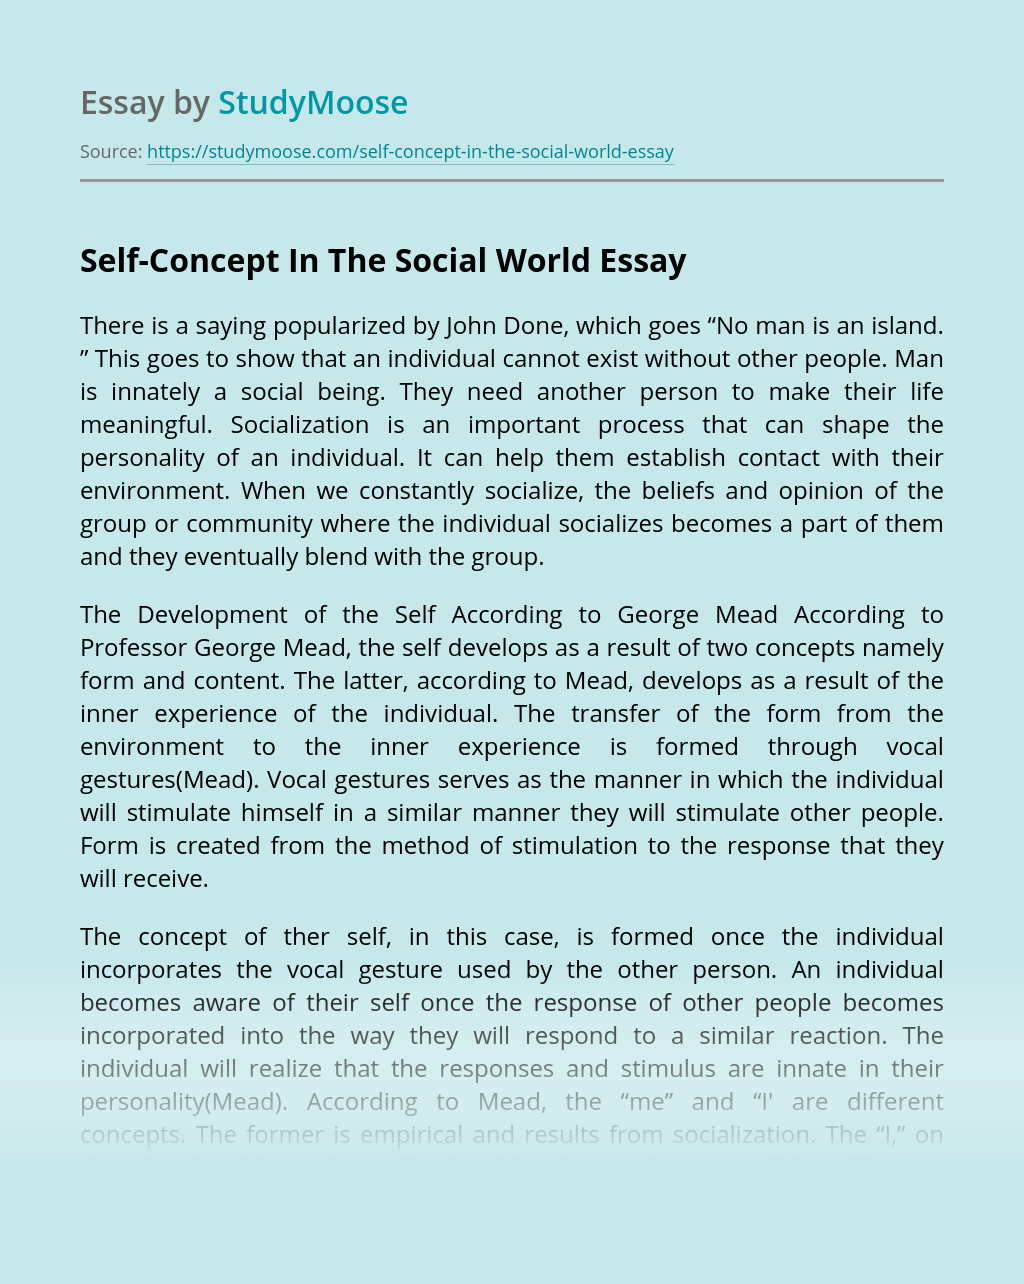 Self-Concept In The Social World